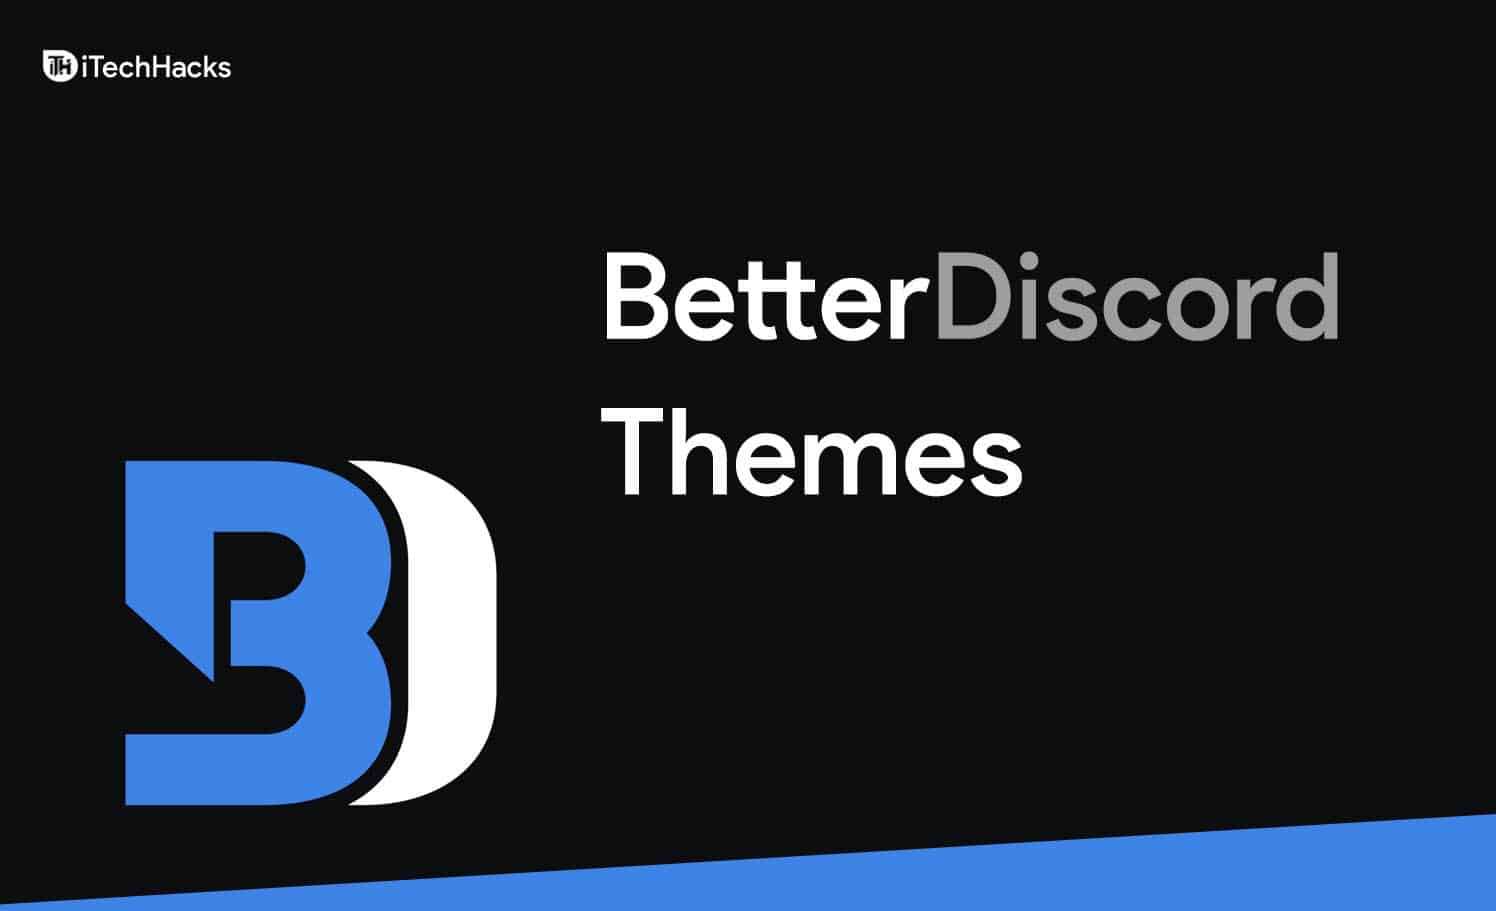 Top 5 Best BetterDiscord Themes and How to Install?